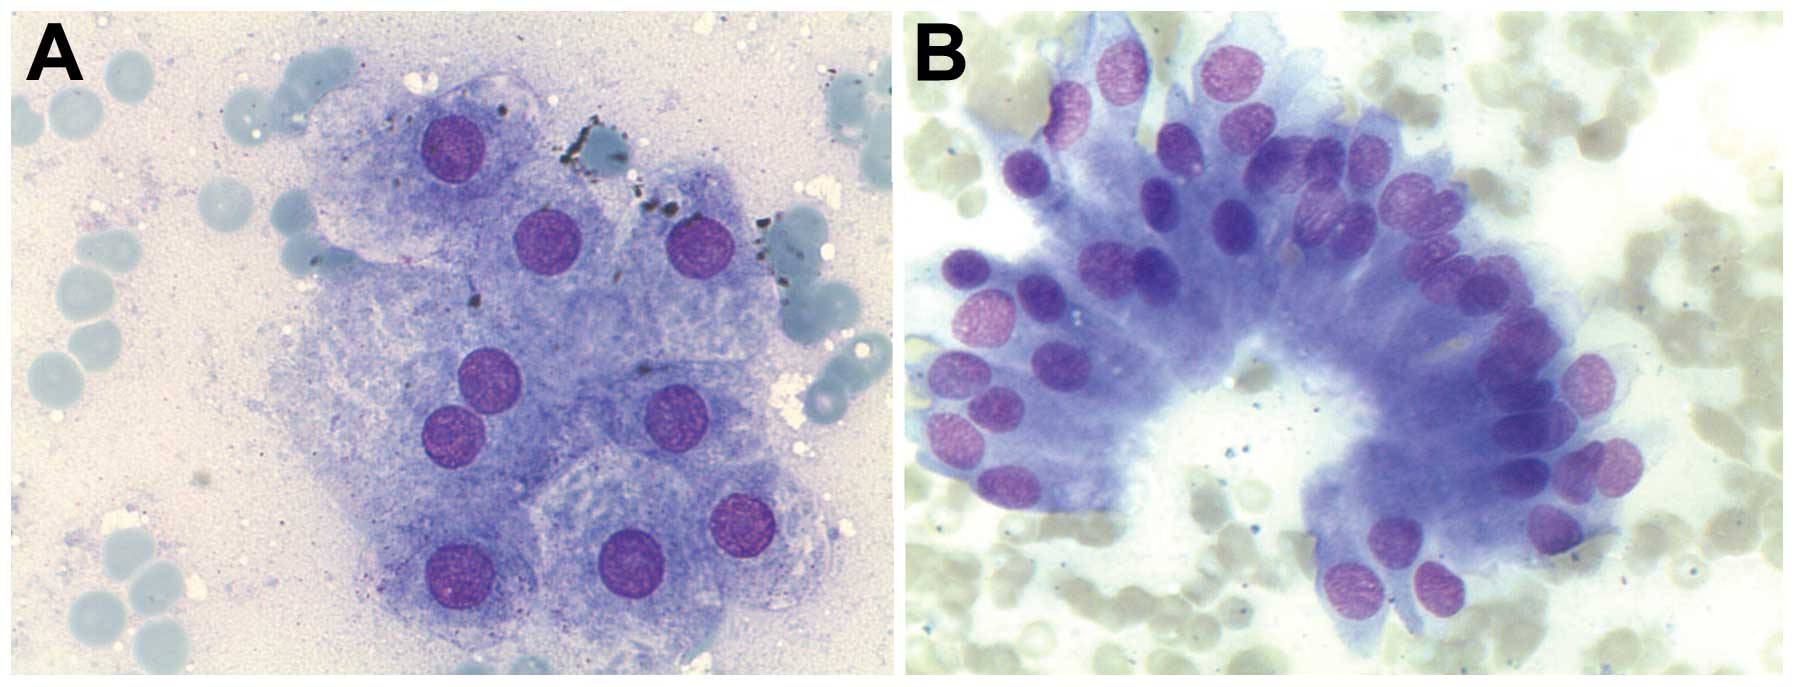 macrophages breast 28 fna cytology